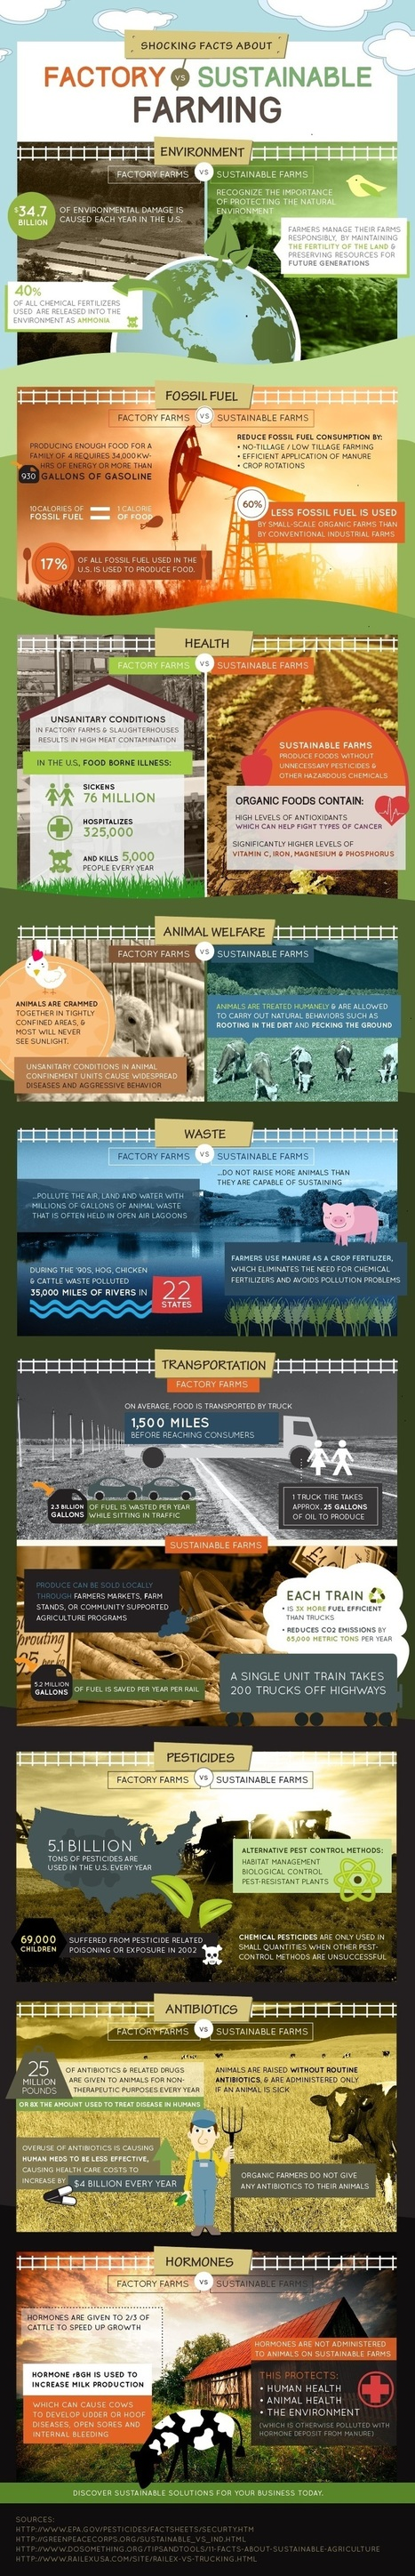 Shocking Facts About Factory Farming Vs. Sustainable Farming - Infographic - A-Z Solutions | Food related production. | Scoop.it